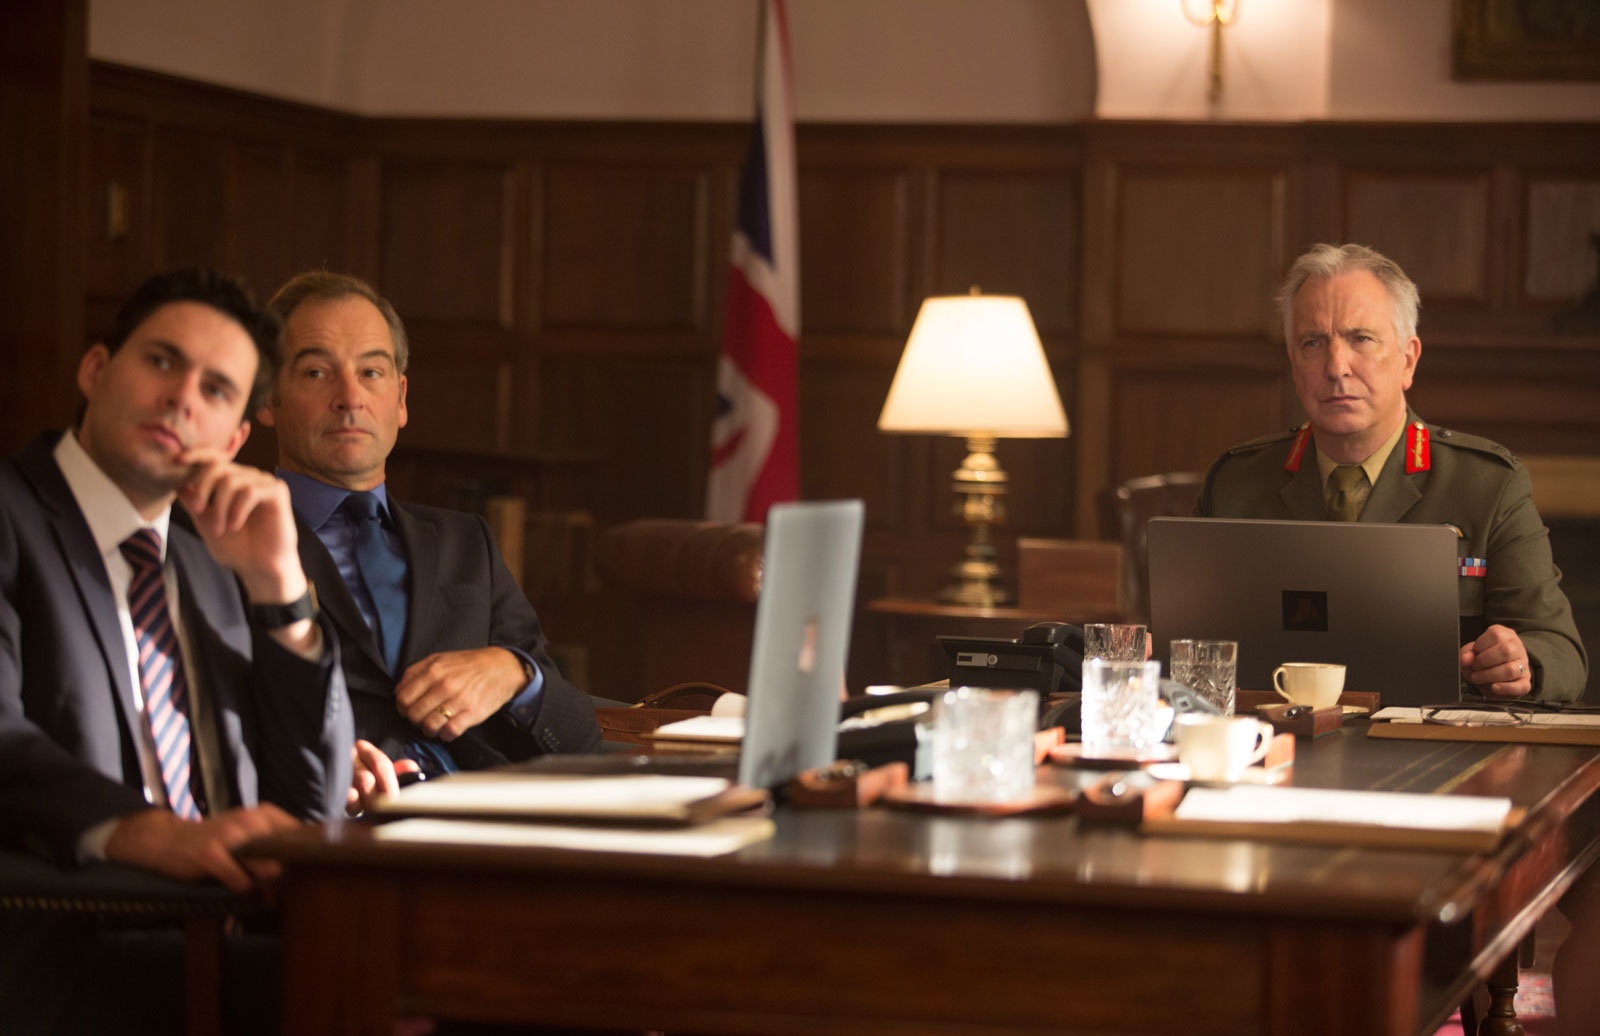 Francis Chouler as Jack Cleary, Jeremy Northam as Brian Woodale and Alan Rickman as Lieutenant General Frank Benson in Hood's Eye in the Sky, 2016